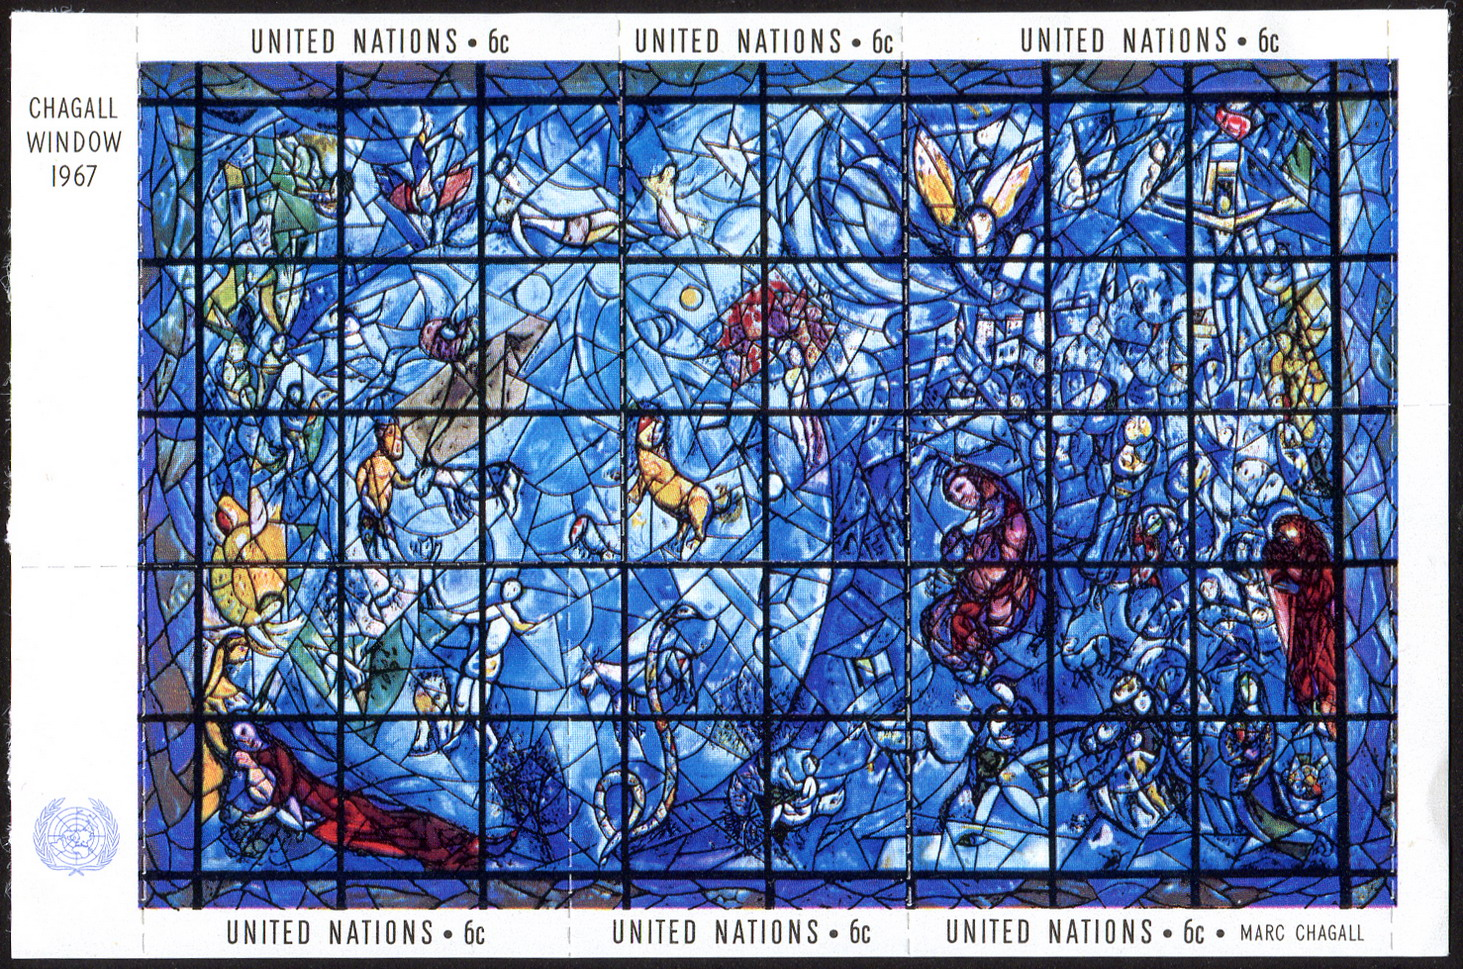 UN-Chagall_window-1967.jpg